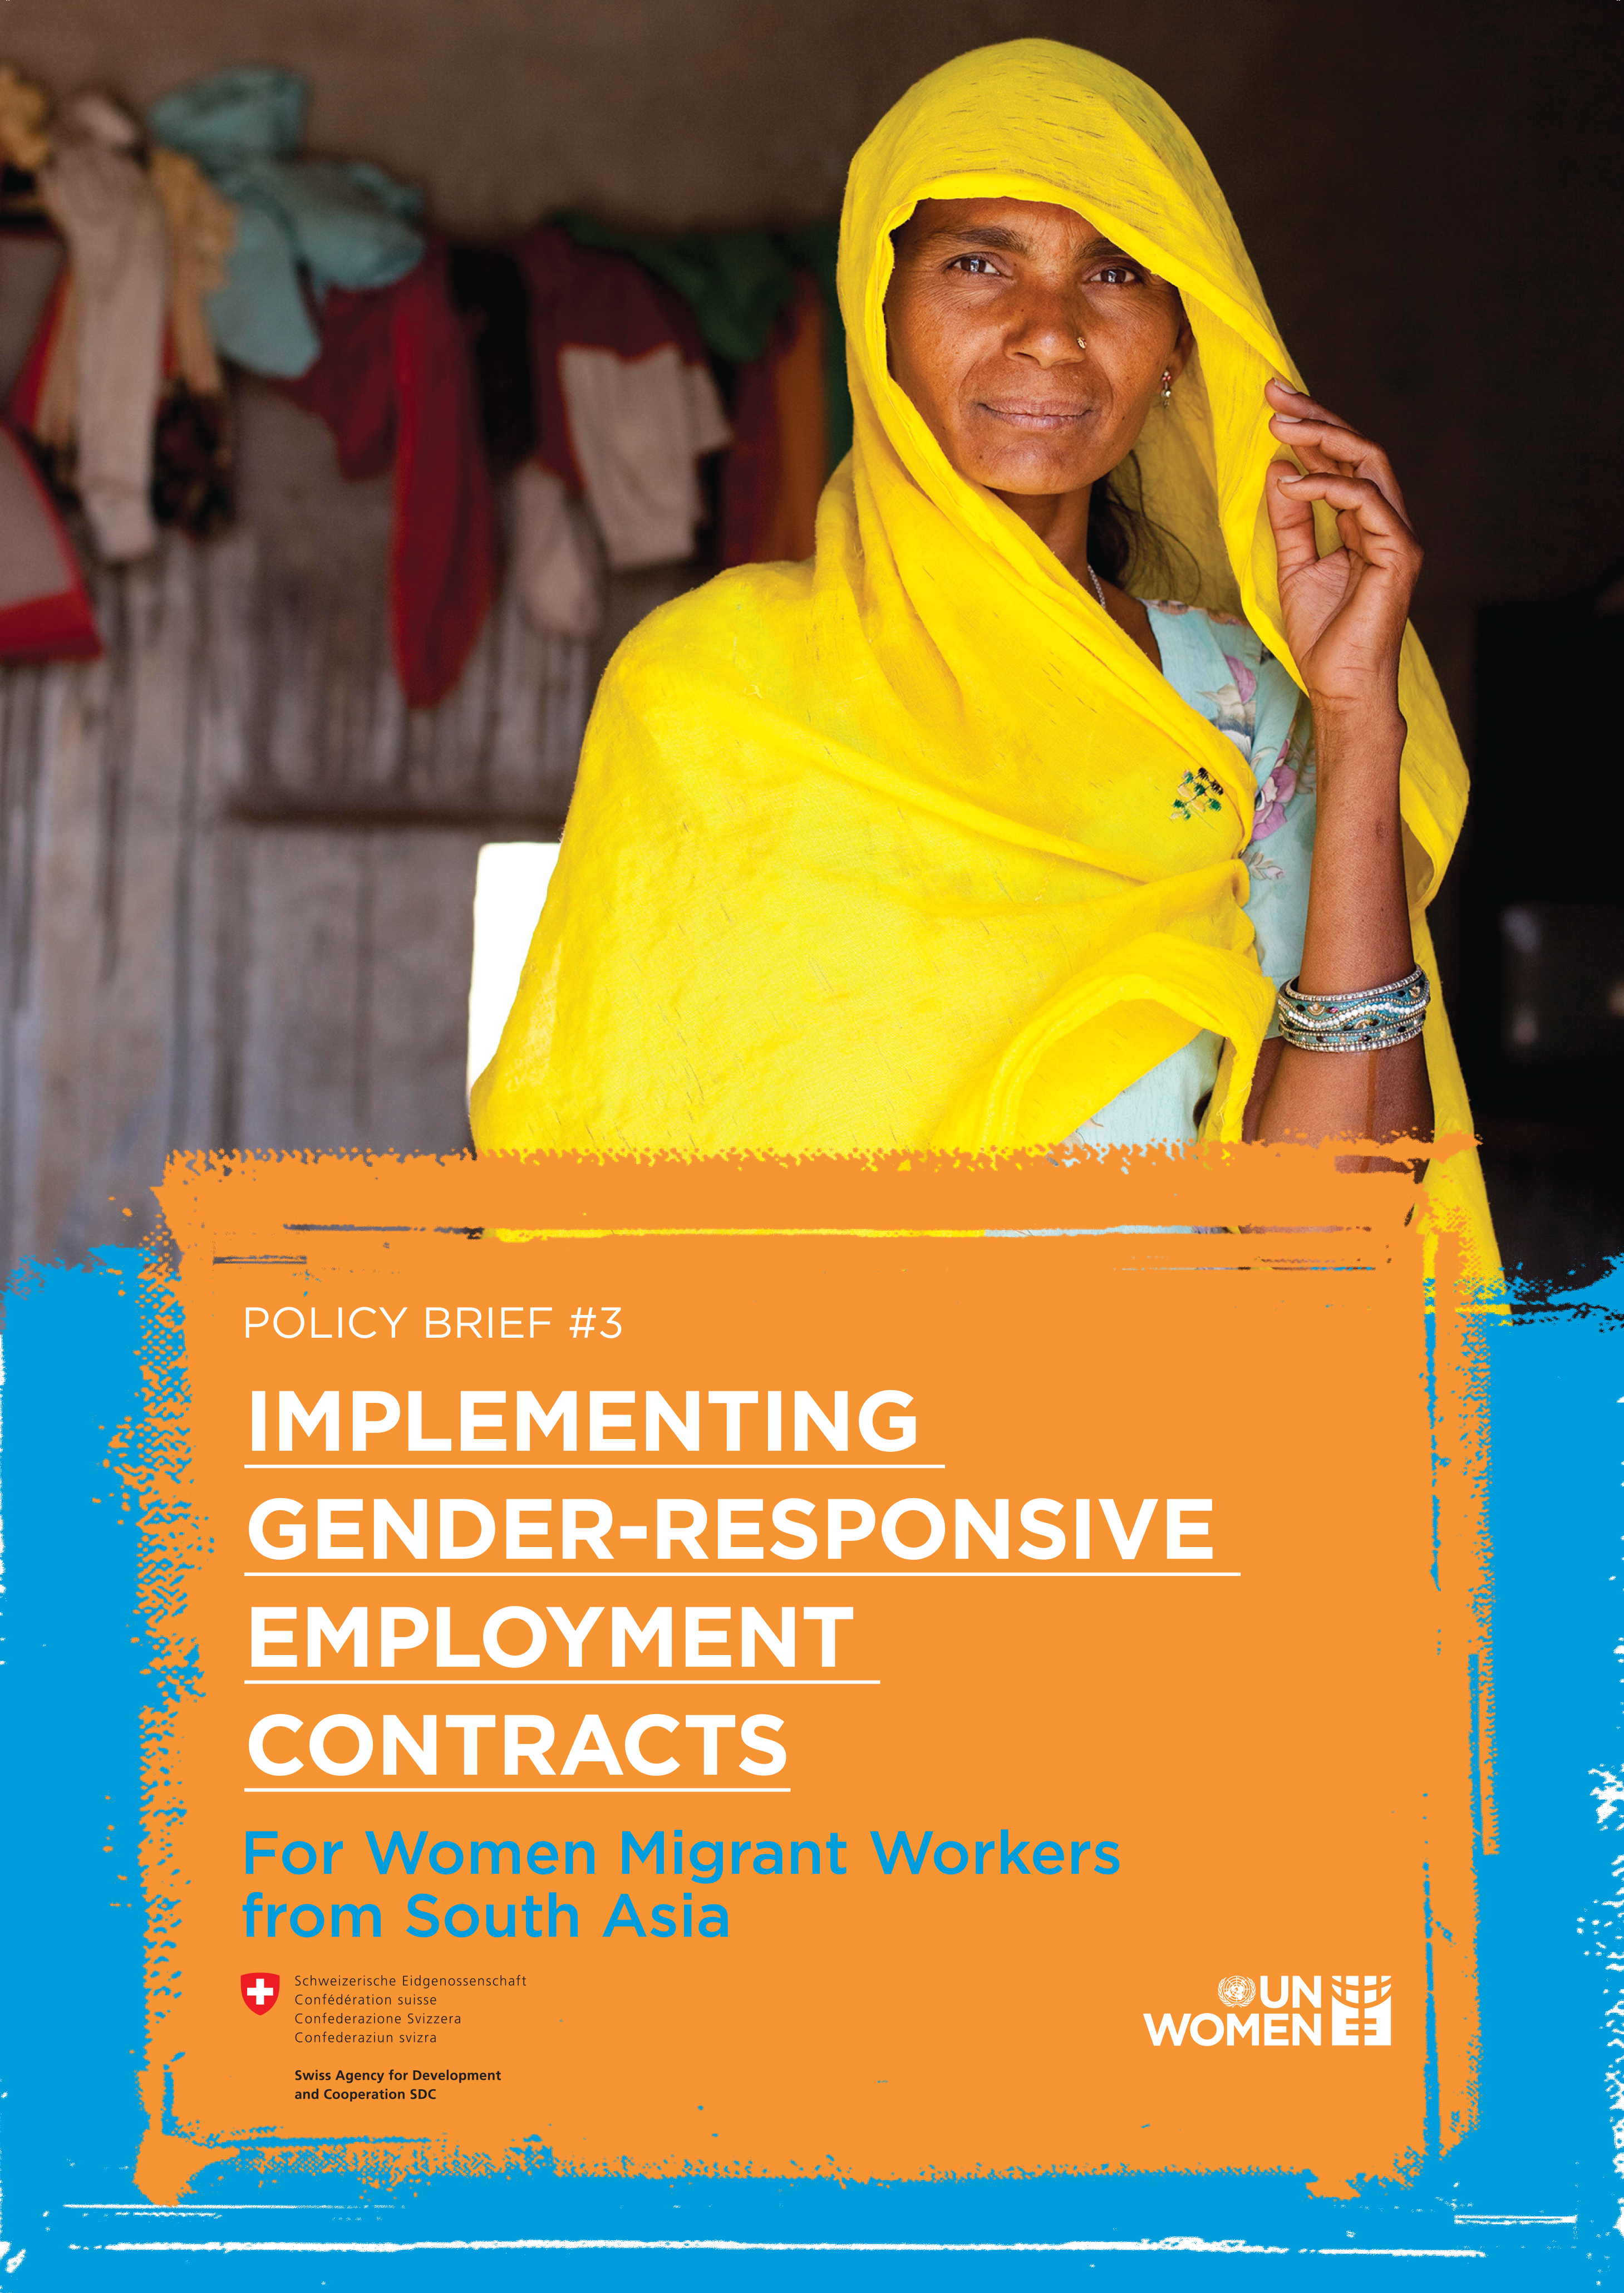 Implementing Gender-Responsive Employment Contracts